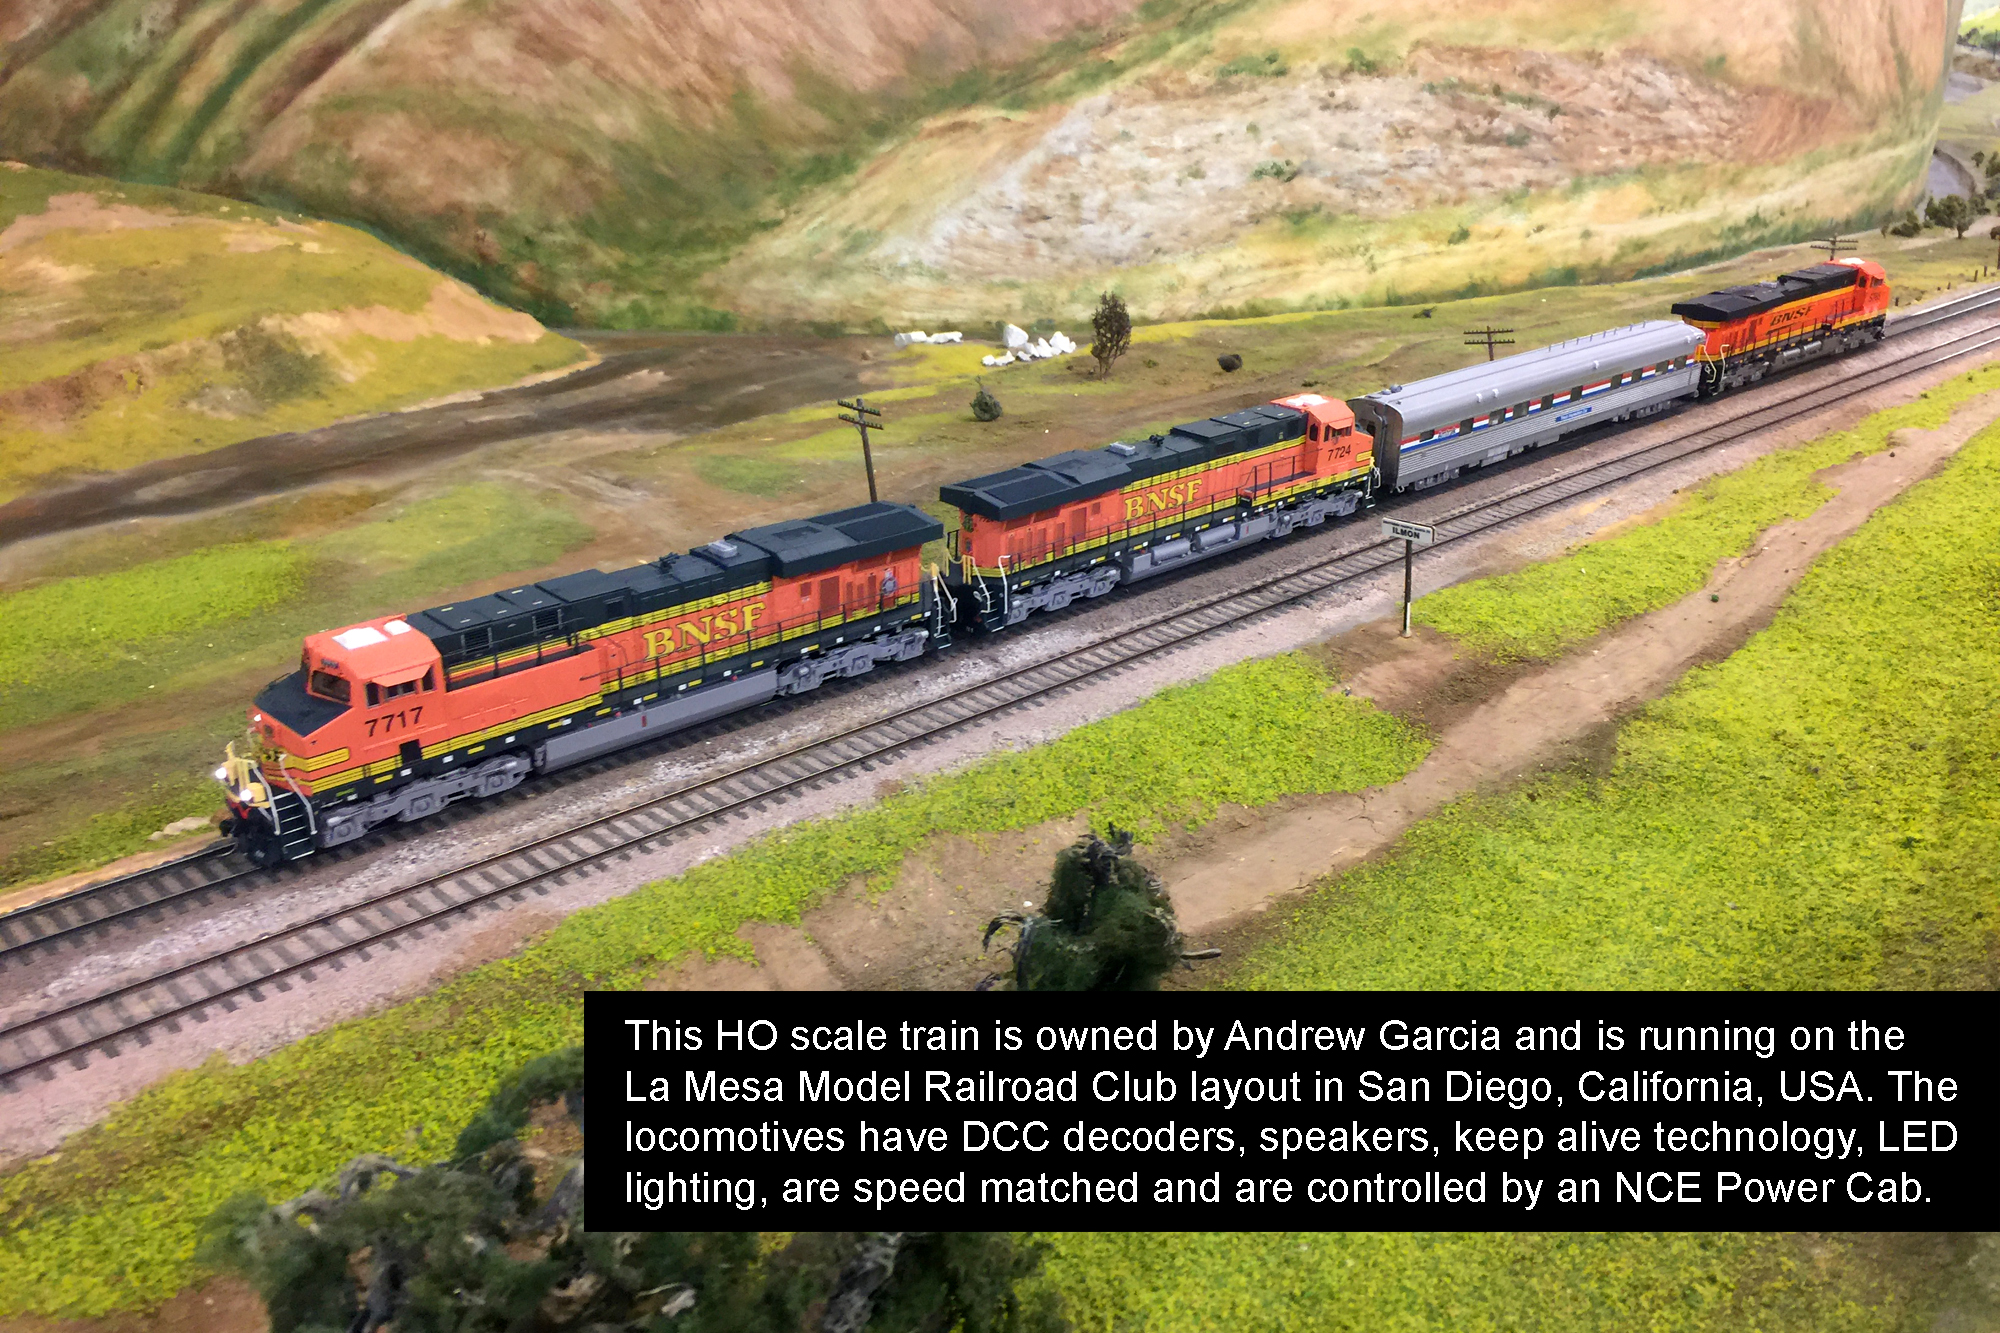 Locomotives owned by Andrew Garcia.